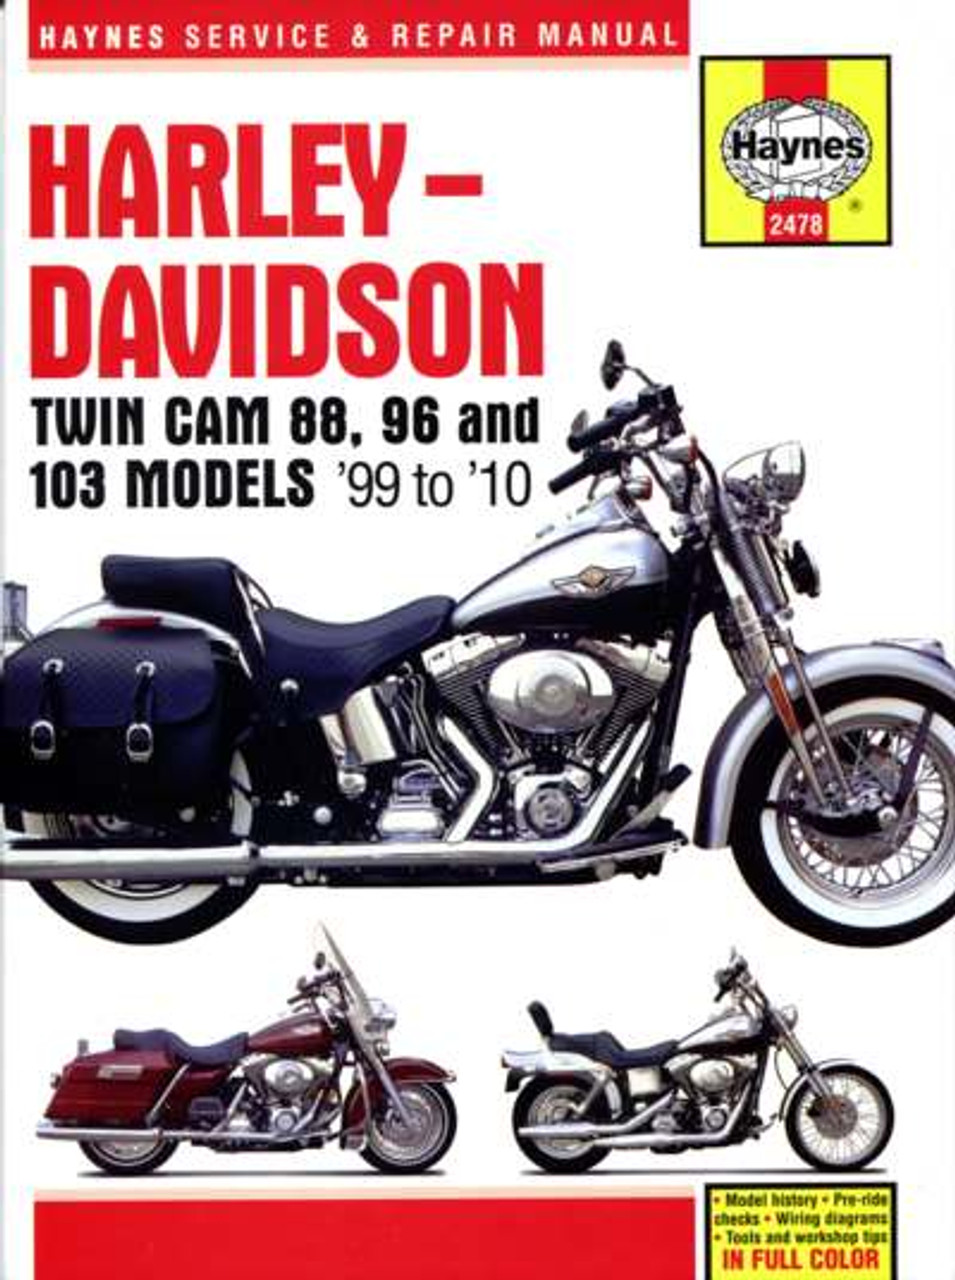 hight resolution of harley heritage wiring diagram for 99